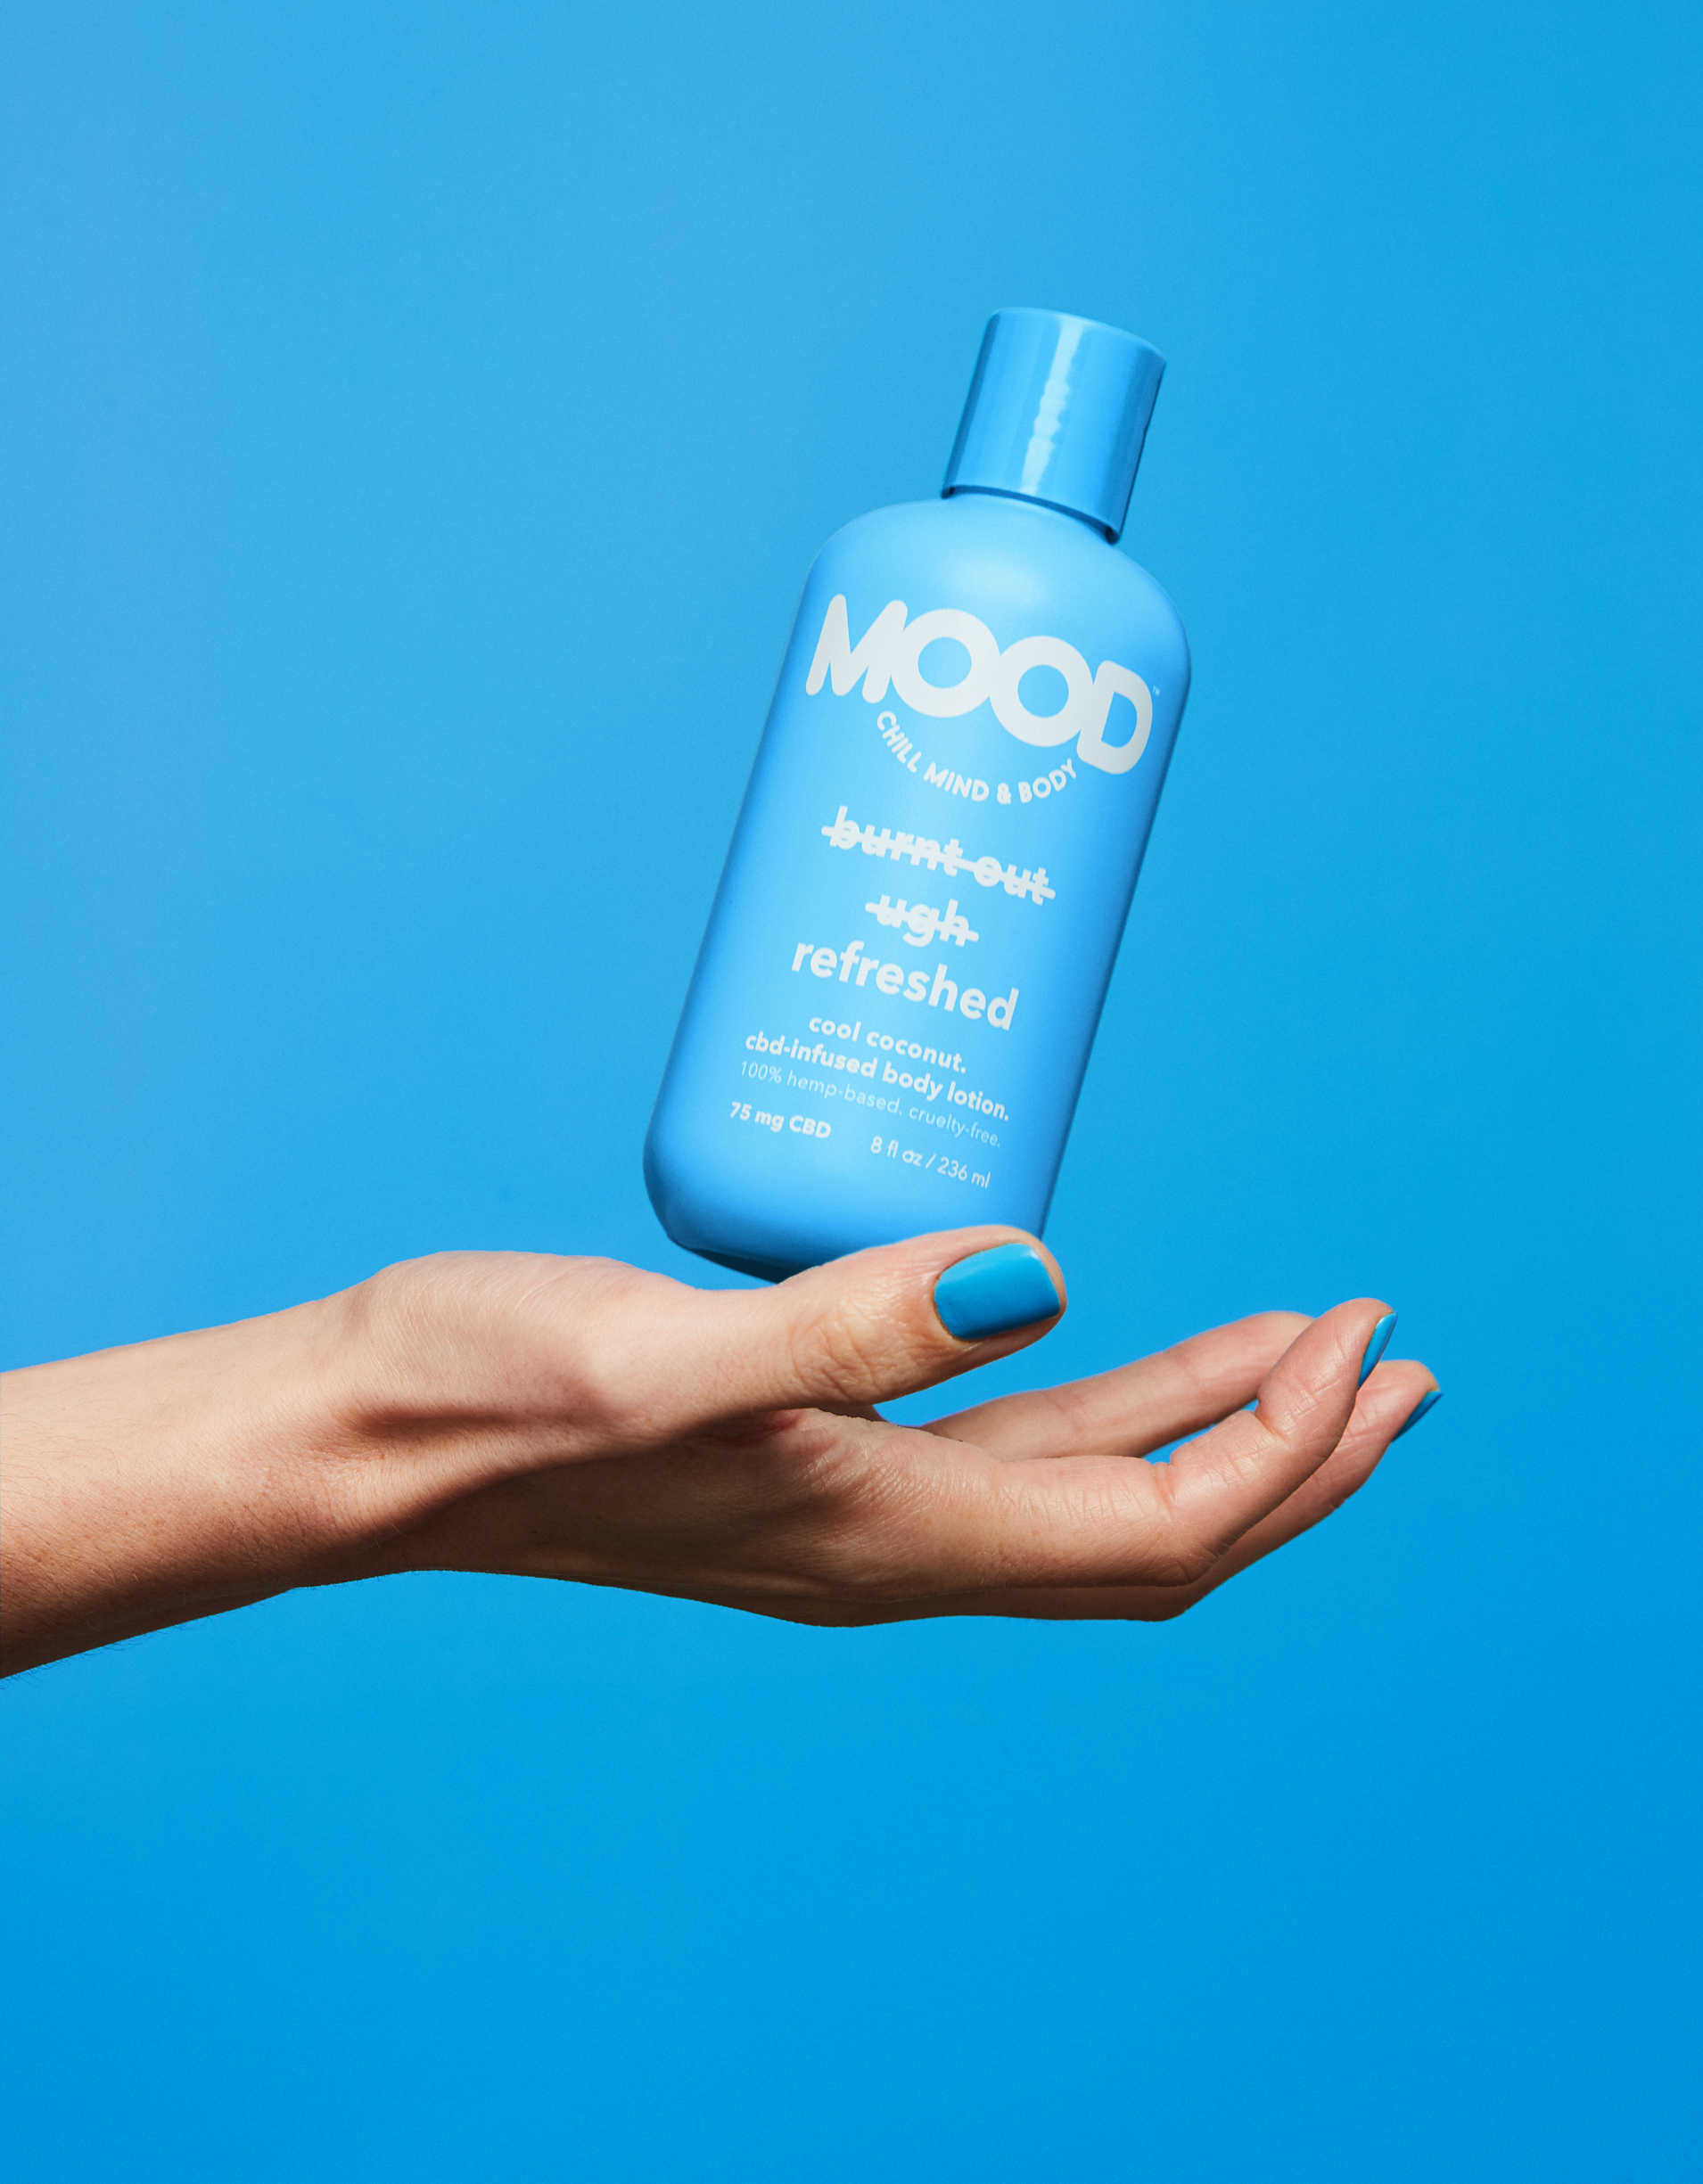 MOOD Refreshed CBD-Infused Body Lotion